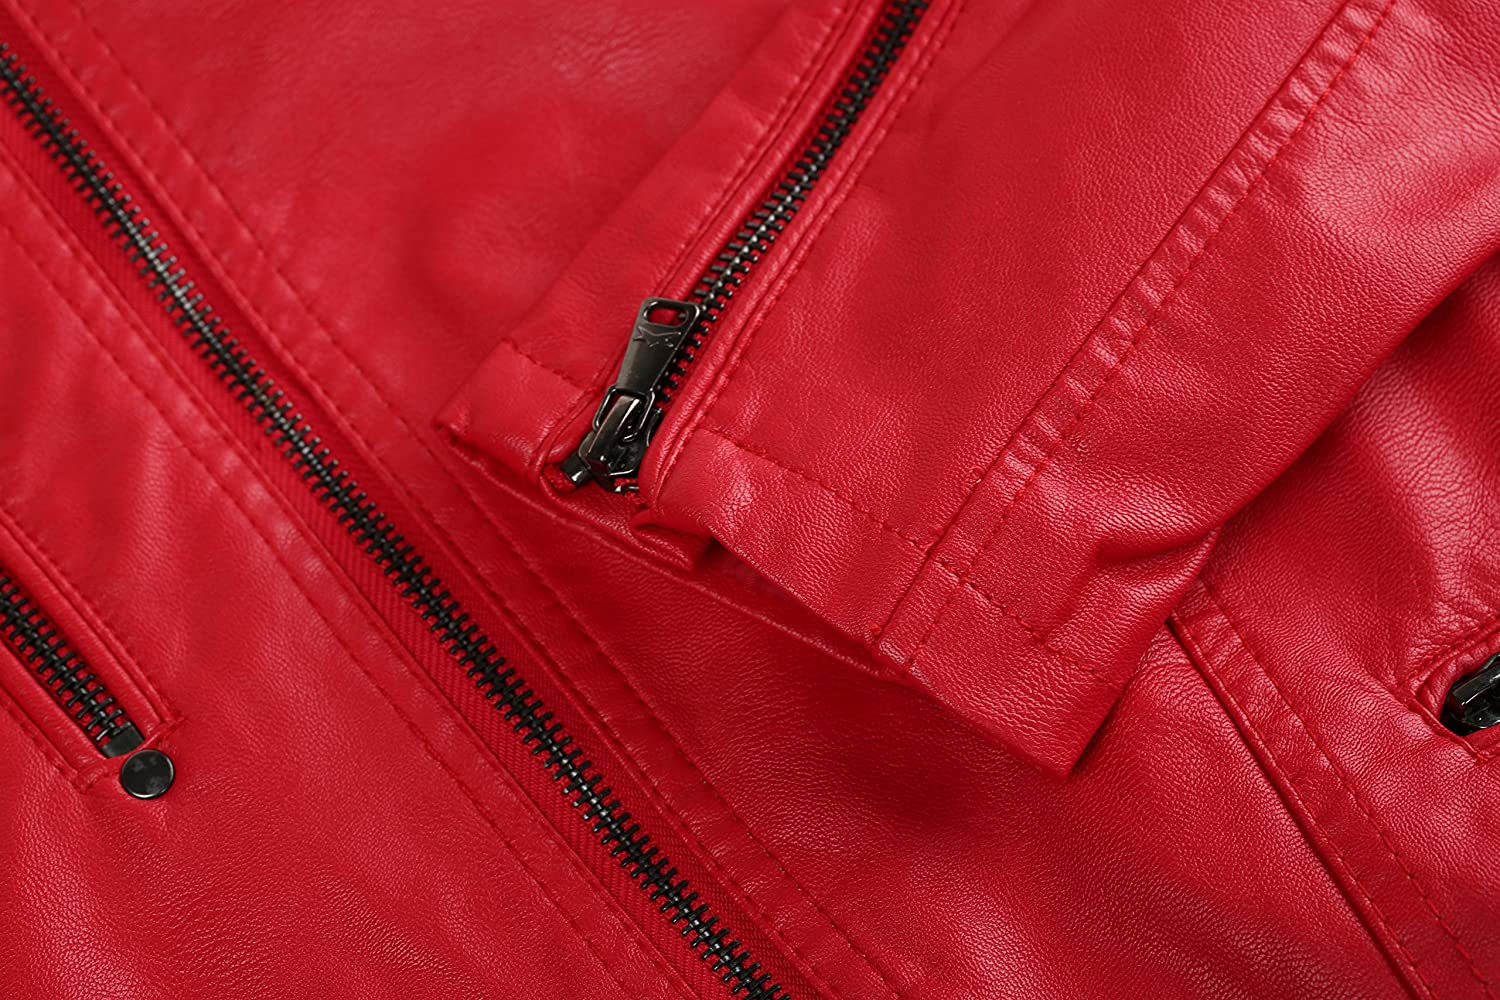 The Twins Dream Girls Faux Leather Jacket PU Casual Outwear Red Casual Coat For New Autumn Spring 2-10y